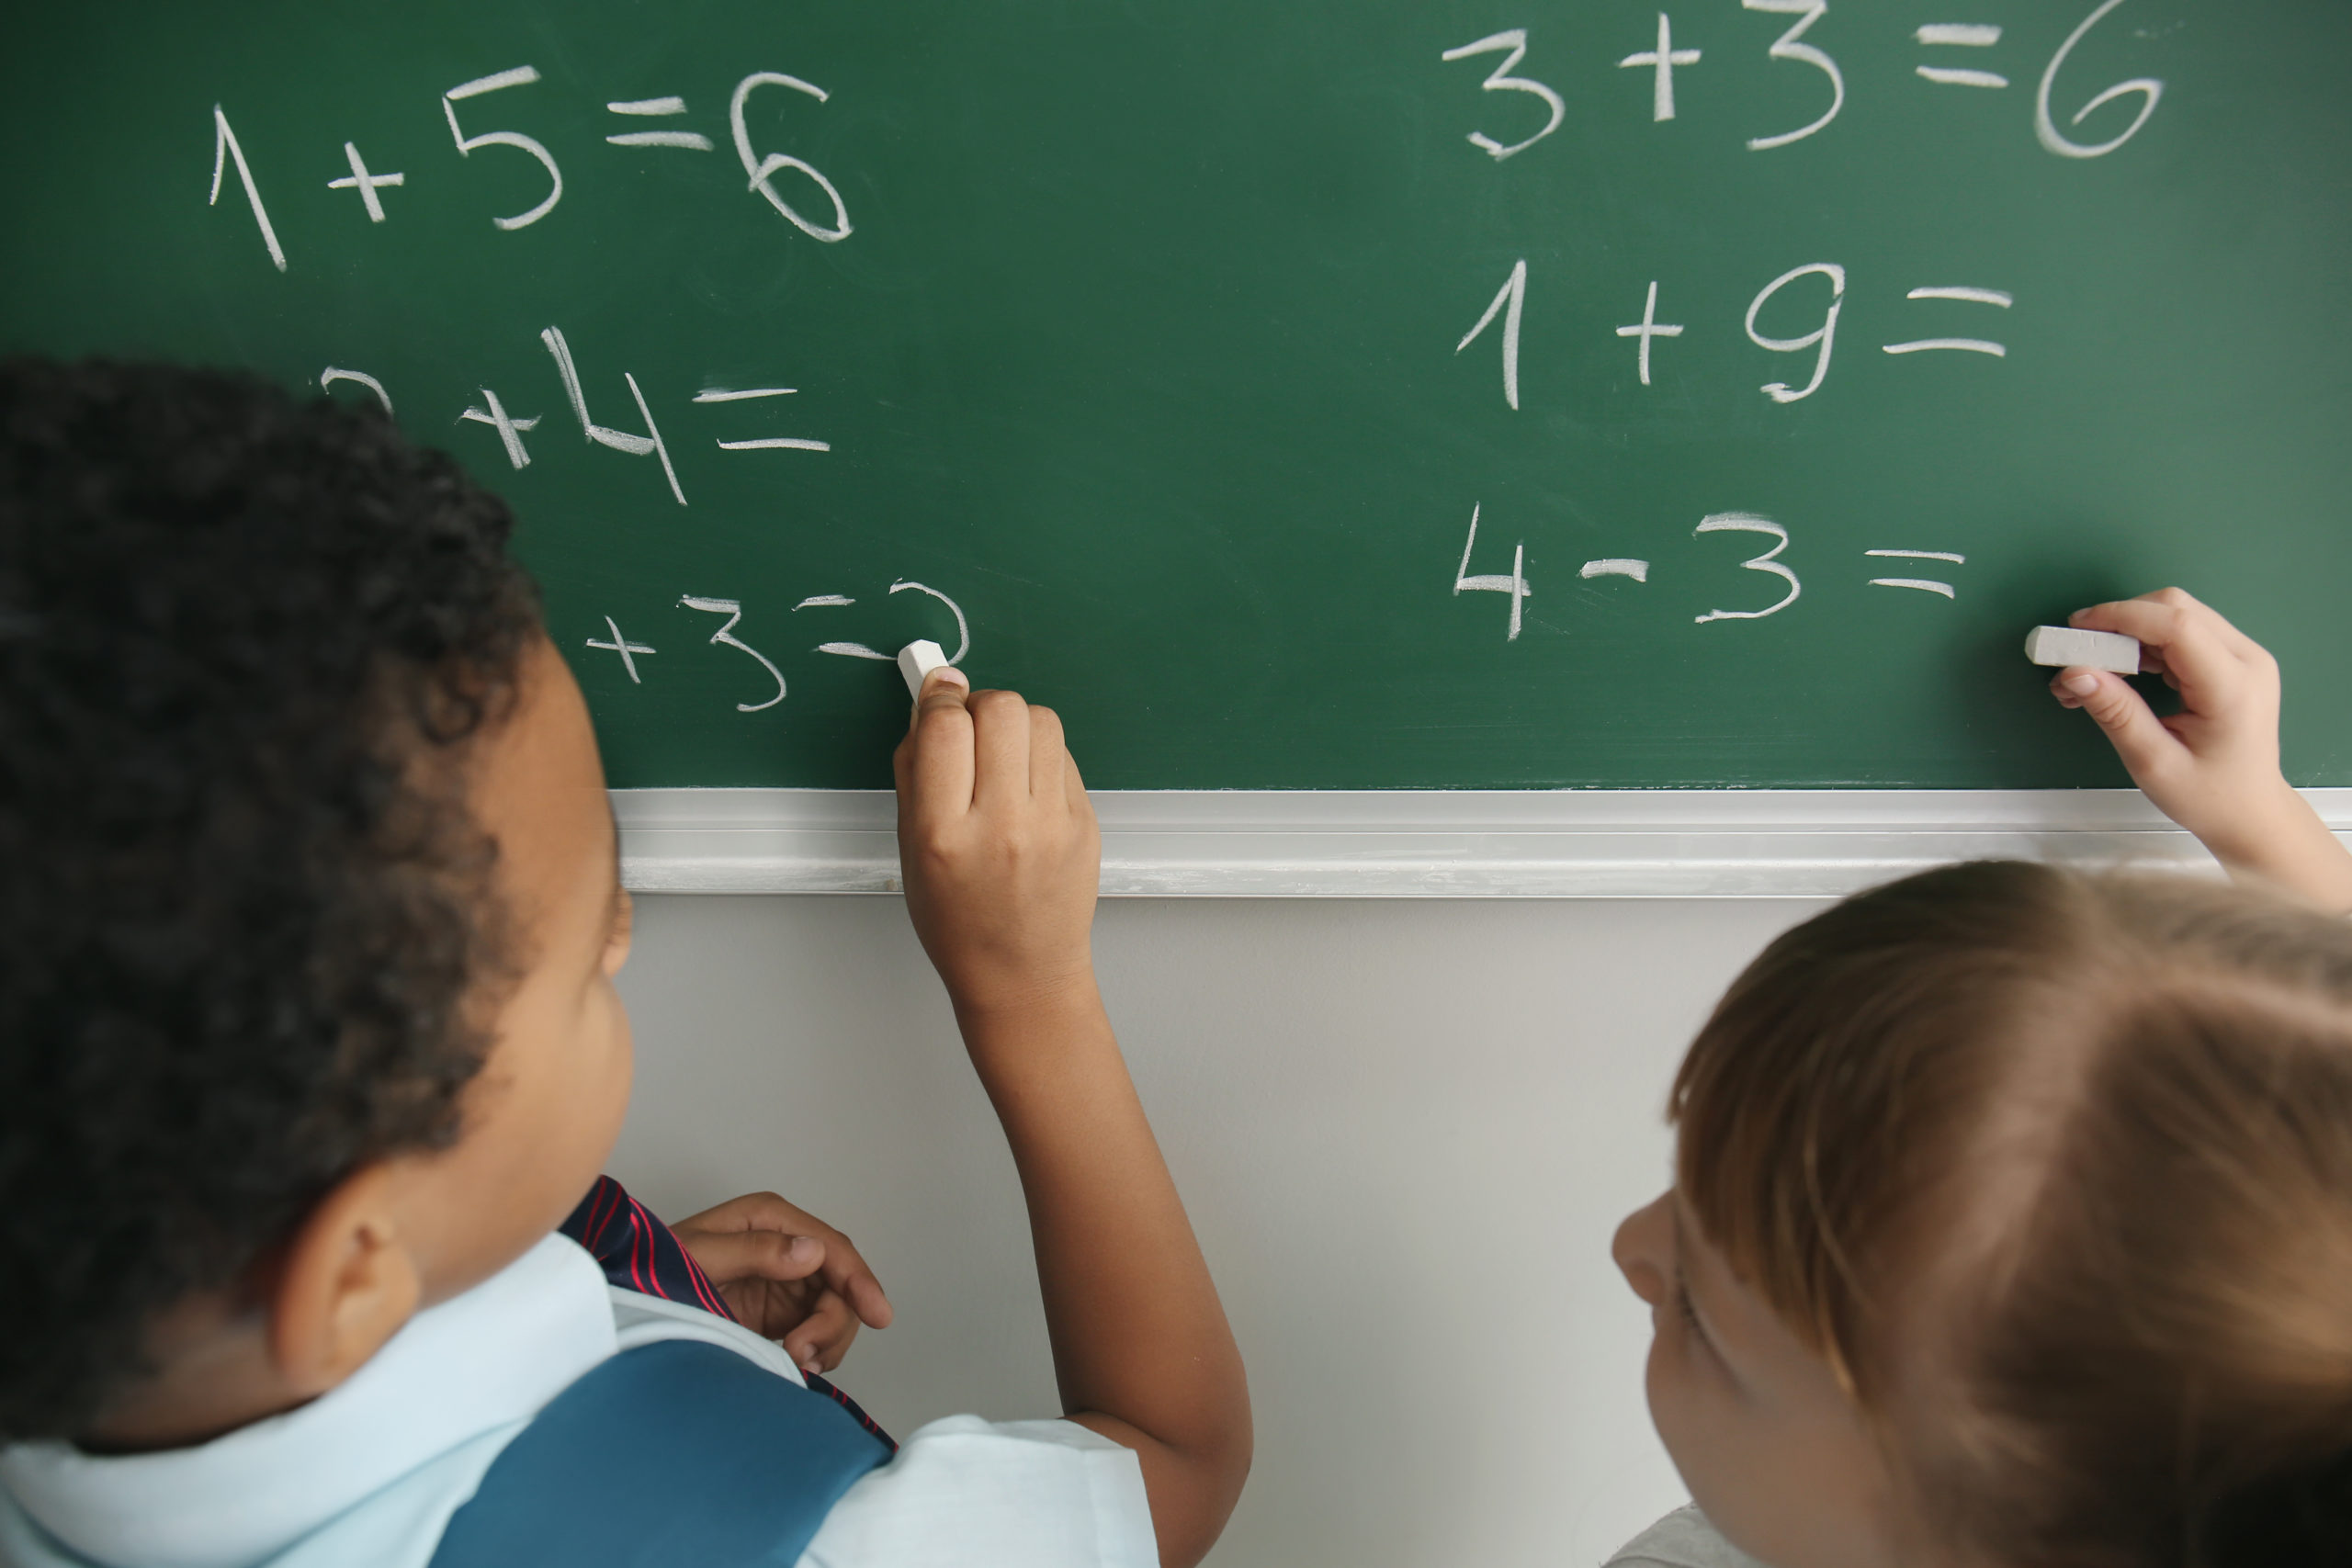 Antiracism In Math Promotes Racism and Bad Math